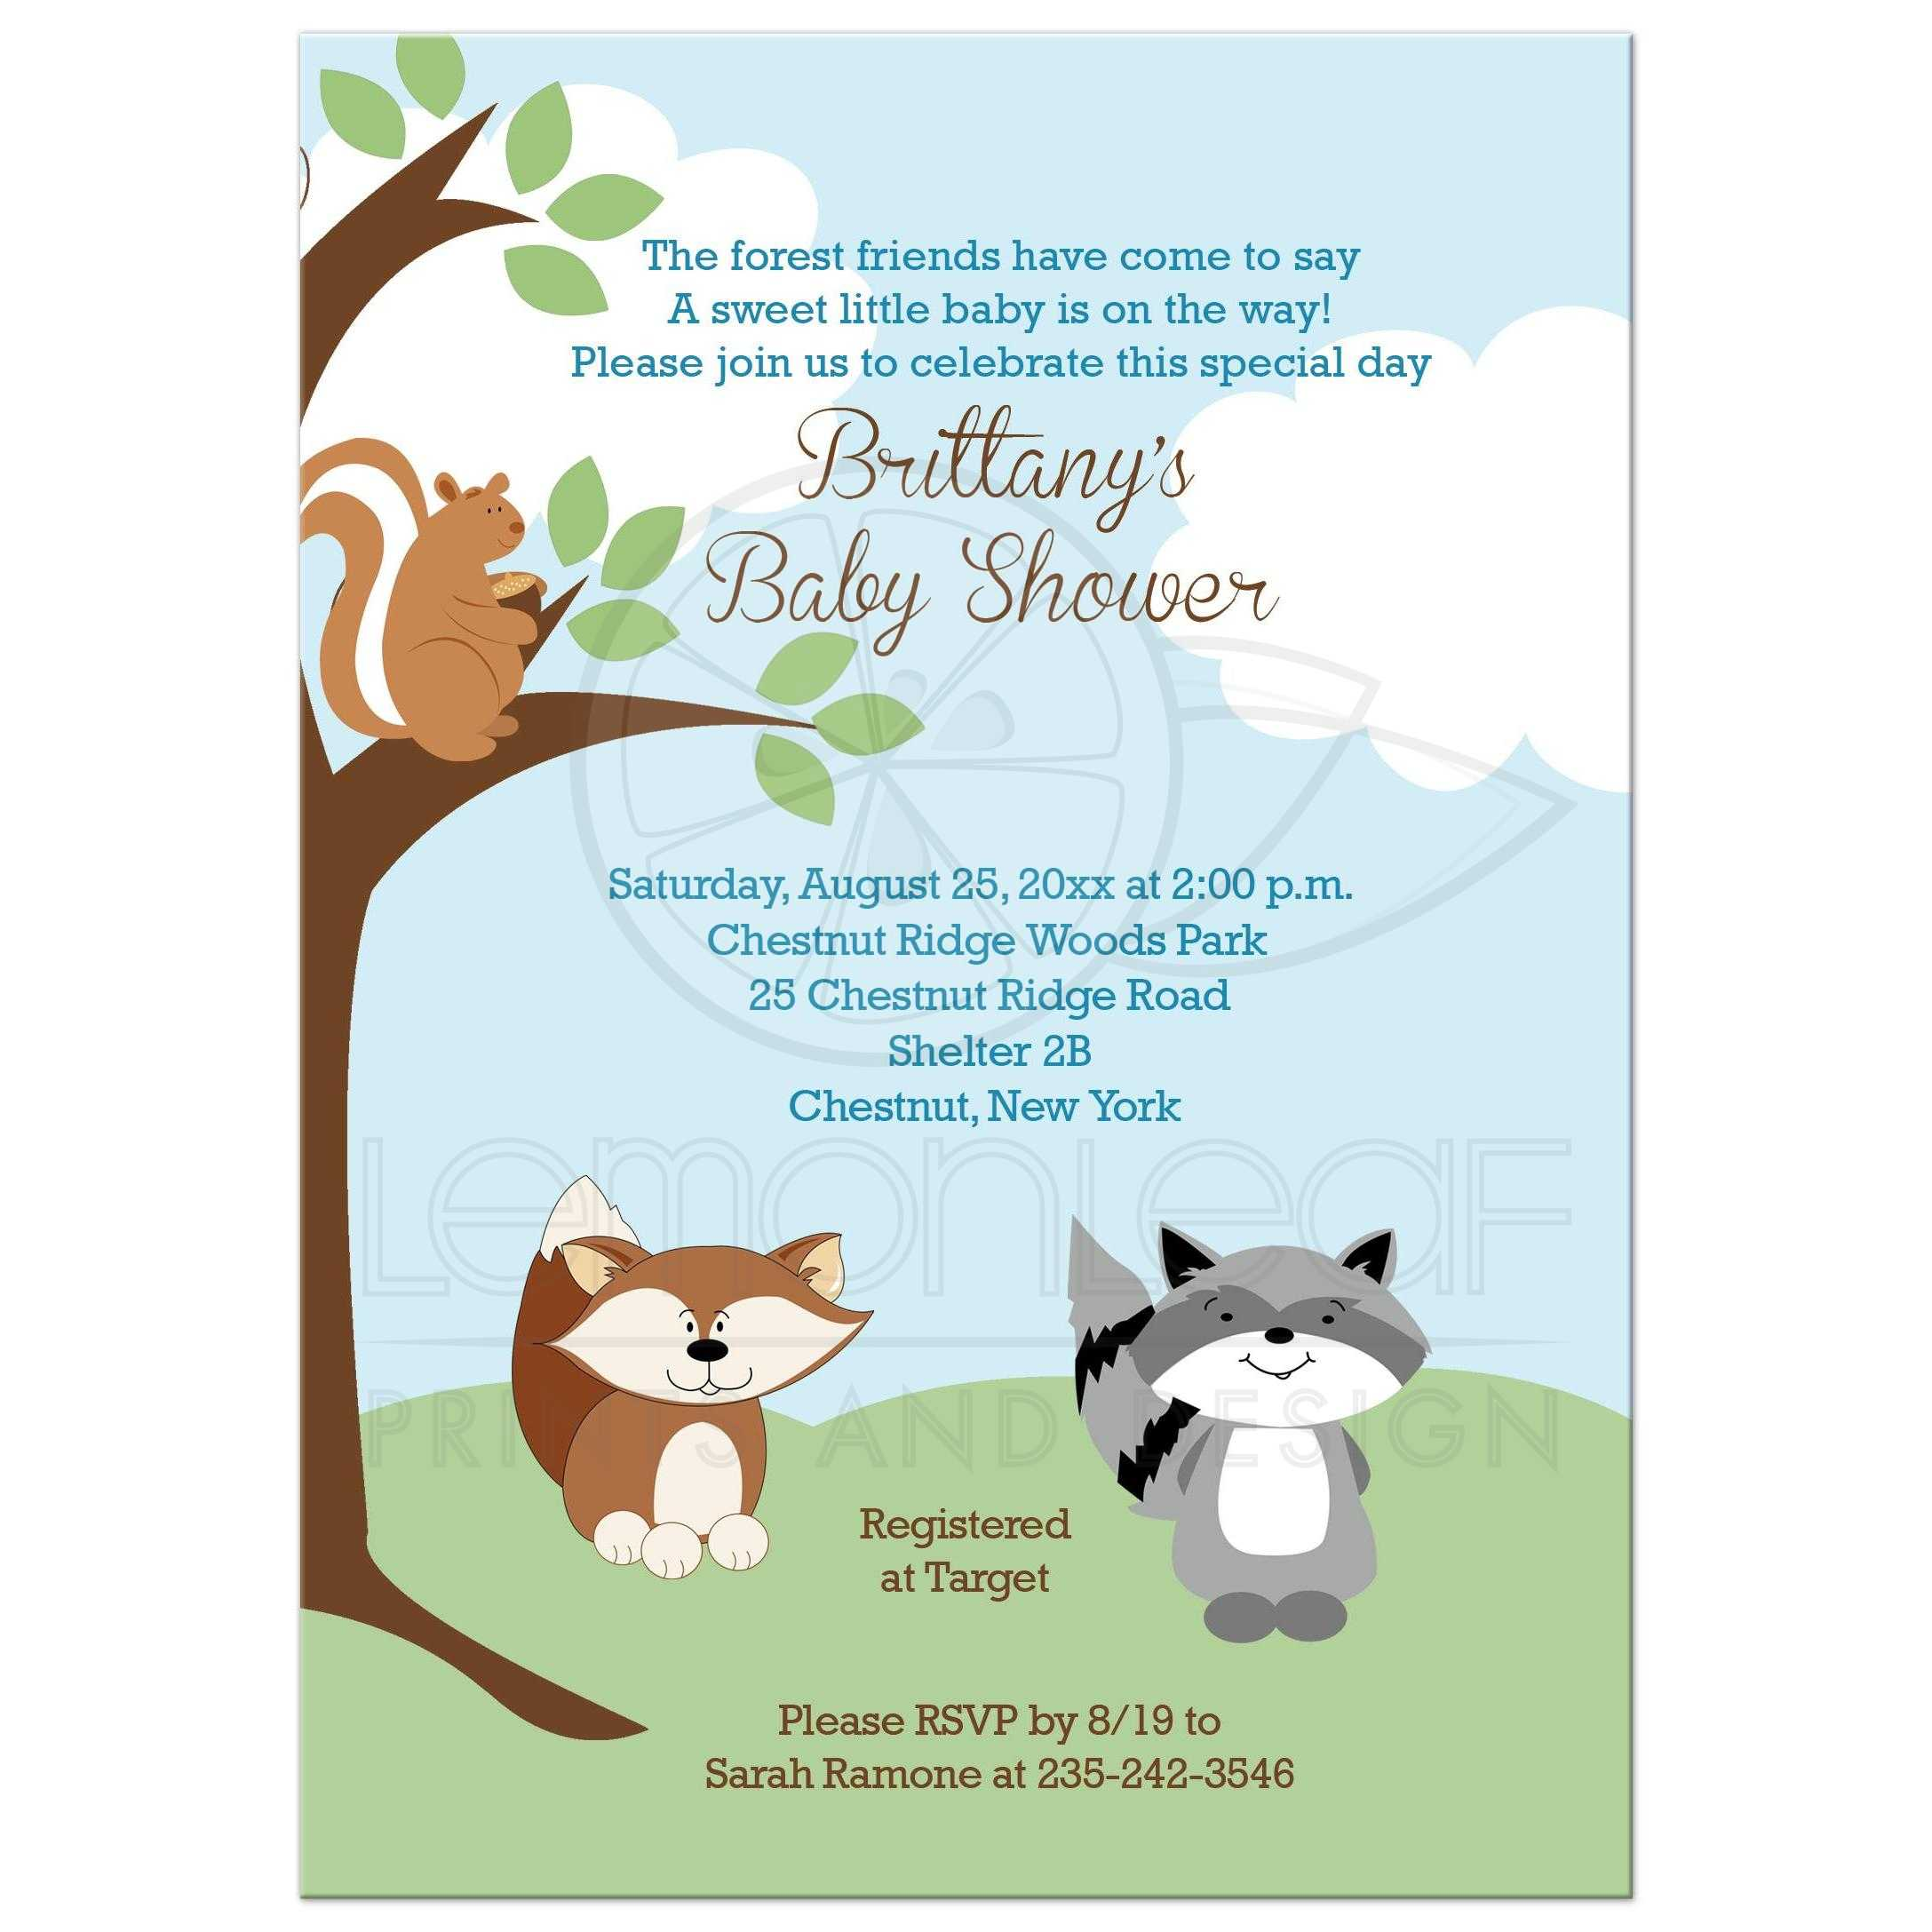 Enchanted forest animals woodland baby shower invitation enchanted forest woodland baby shower invitation filmwisefo